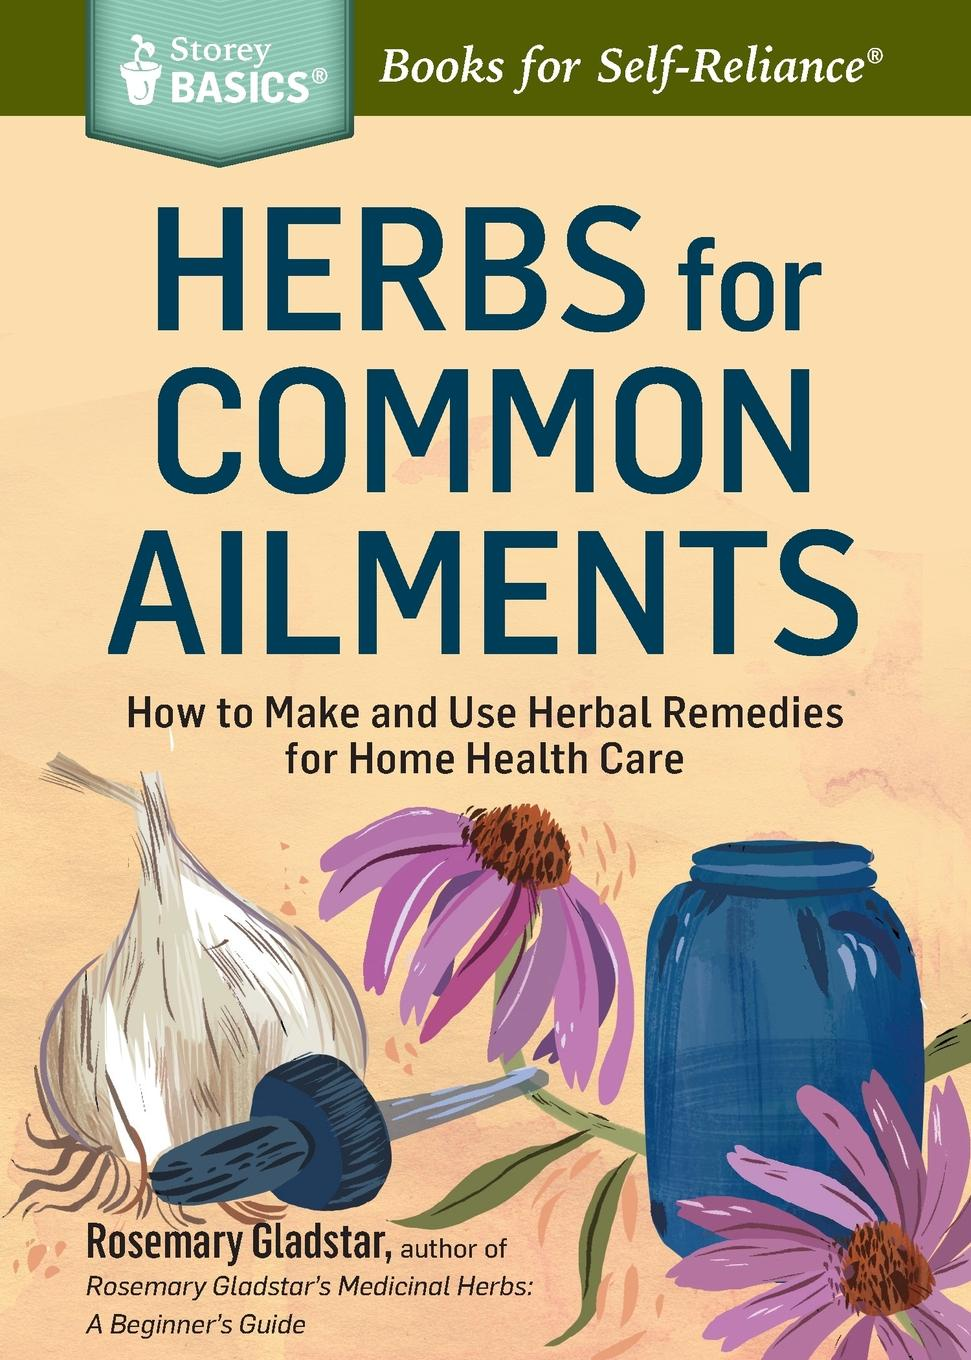 Фото - Rosemary Gladstar Herbs for Common Ailments. How to Make and Use Herbal Remedies for Home Health Care. A Storey BASICS. Title mark kopecky managing manure how to store compost and use organic livestock wastes a storey basics title